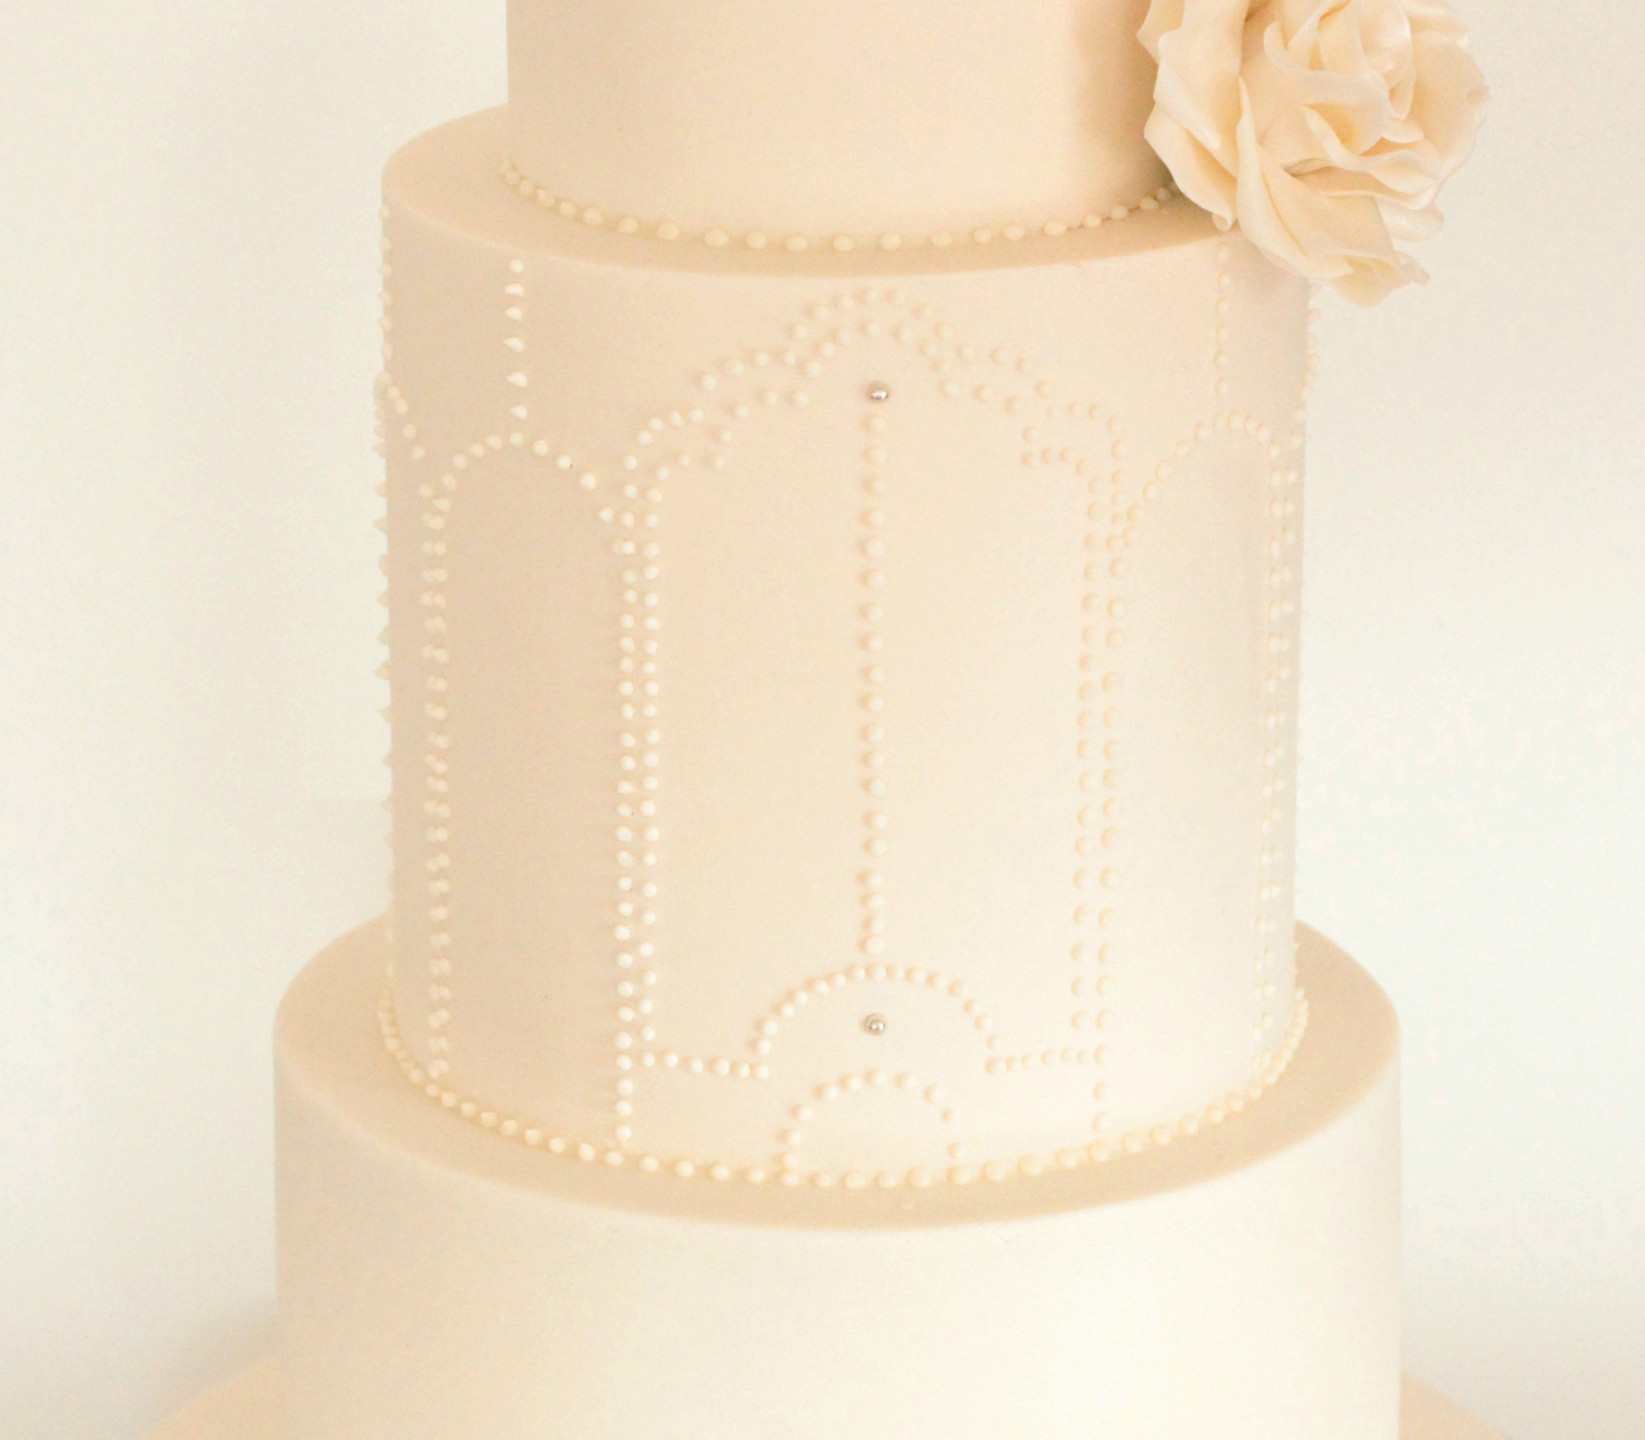 Tall and elegant, traditional ivory and hand piped royal icing designs.